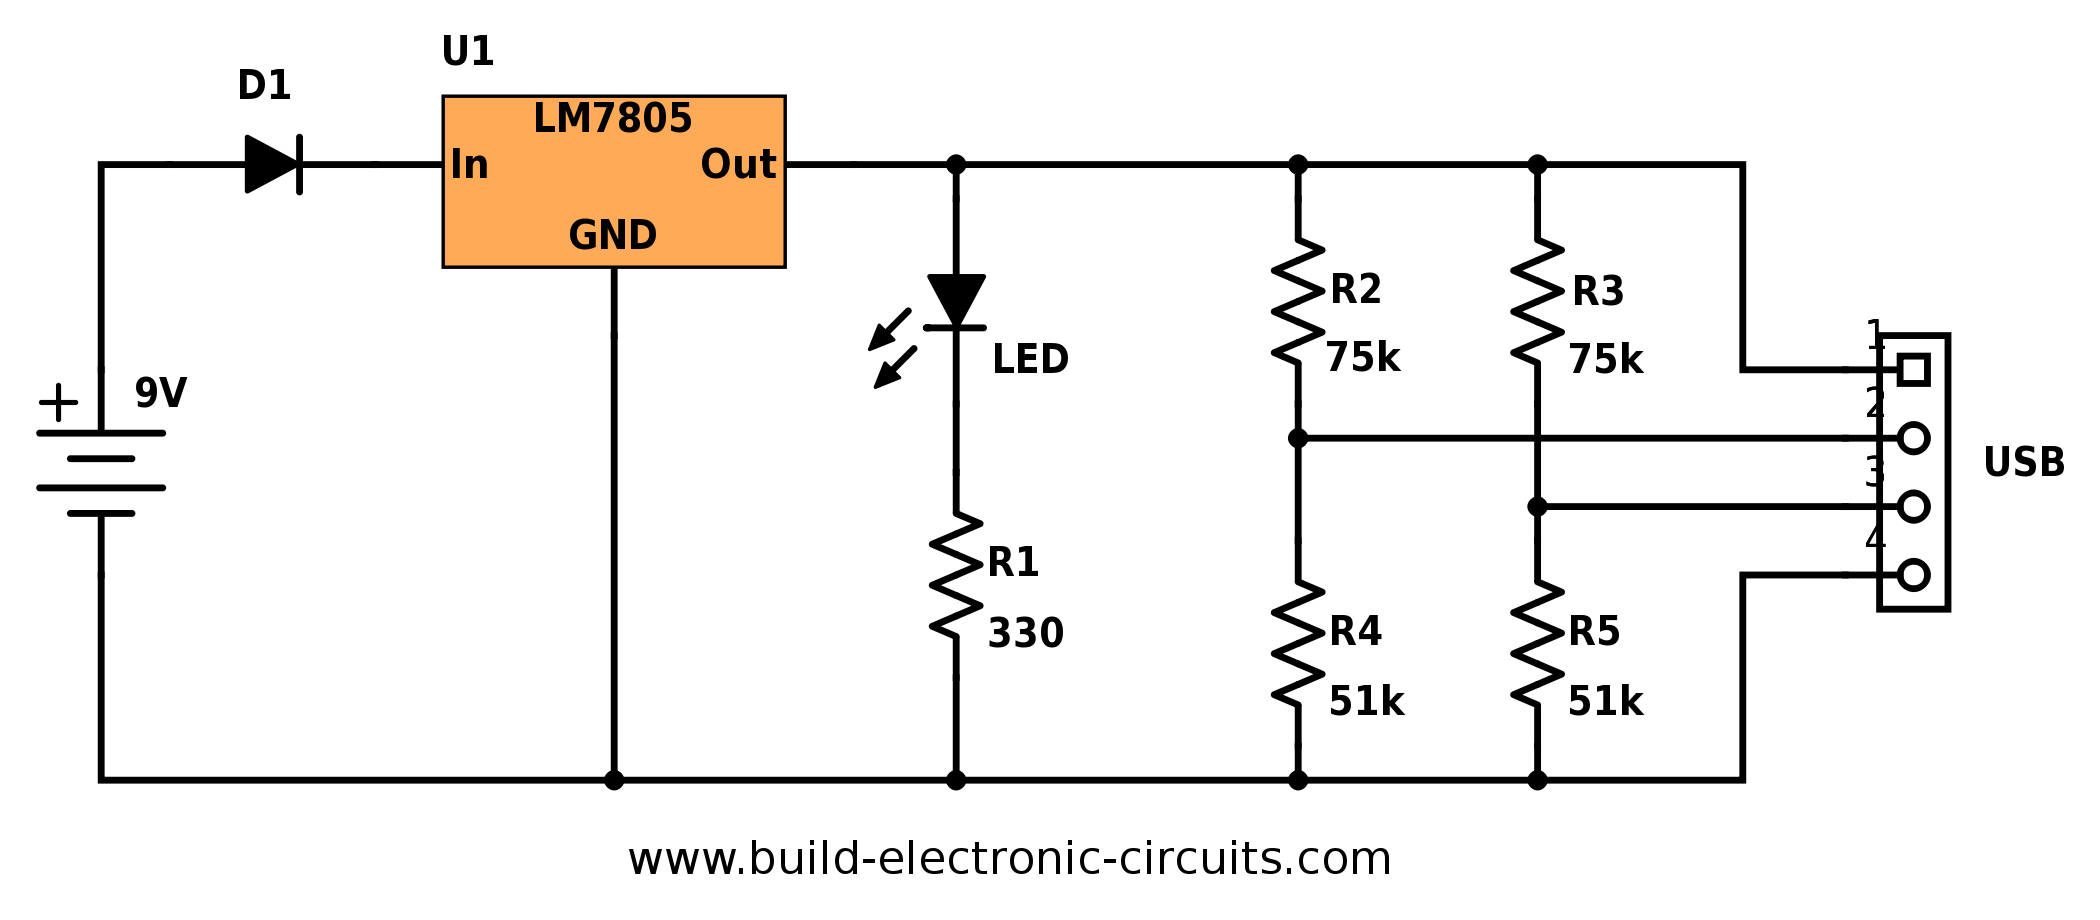 115 Vac Schematic Usb Power Chargers | Wiring Library - Wiring Diagram For Usb Charger